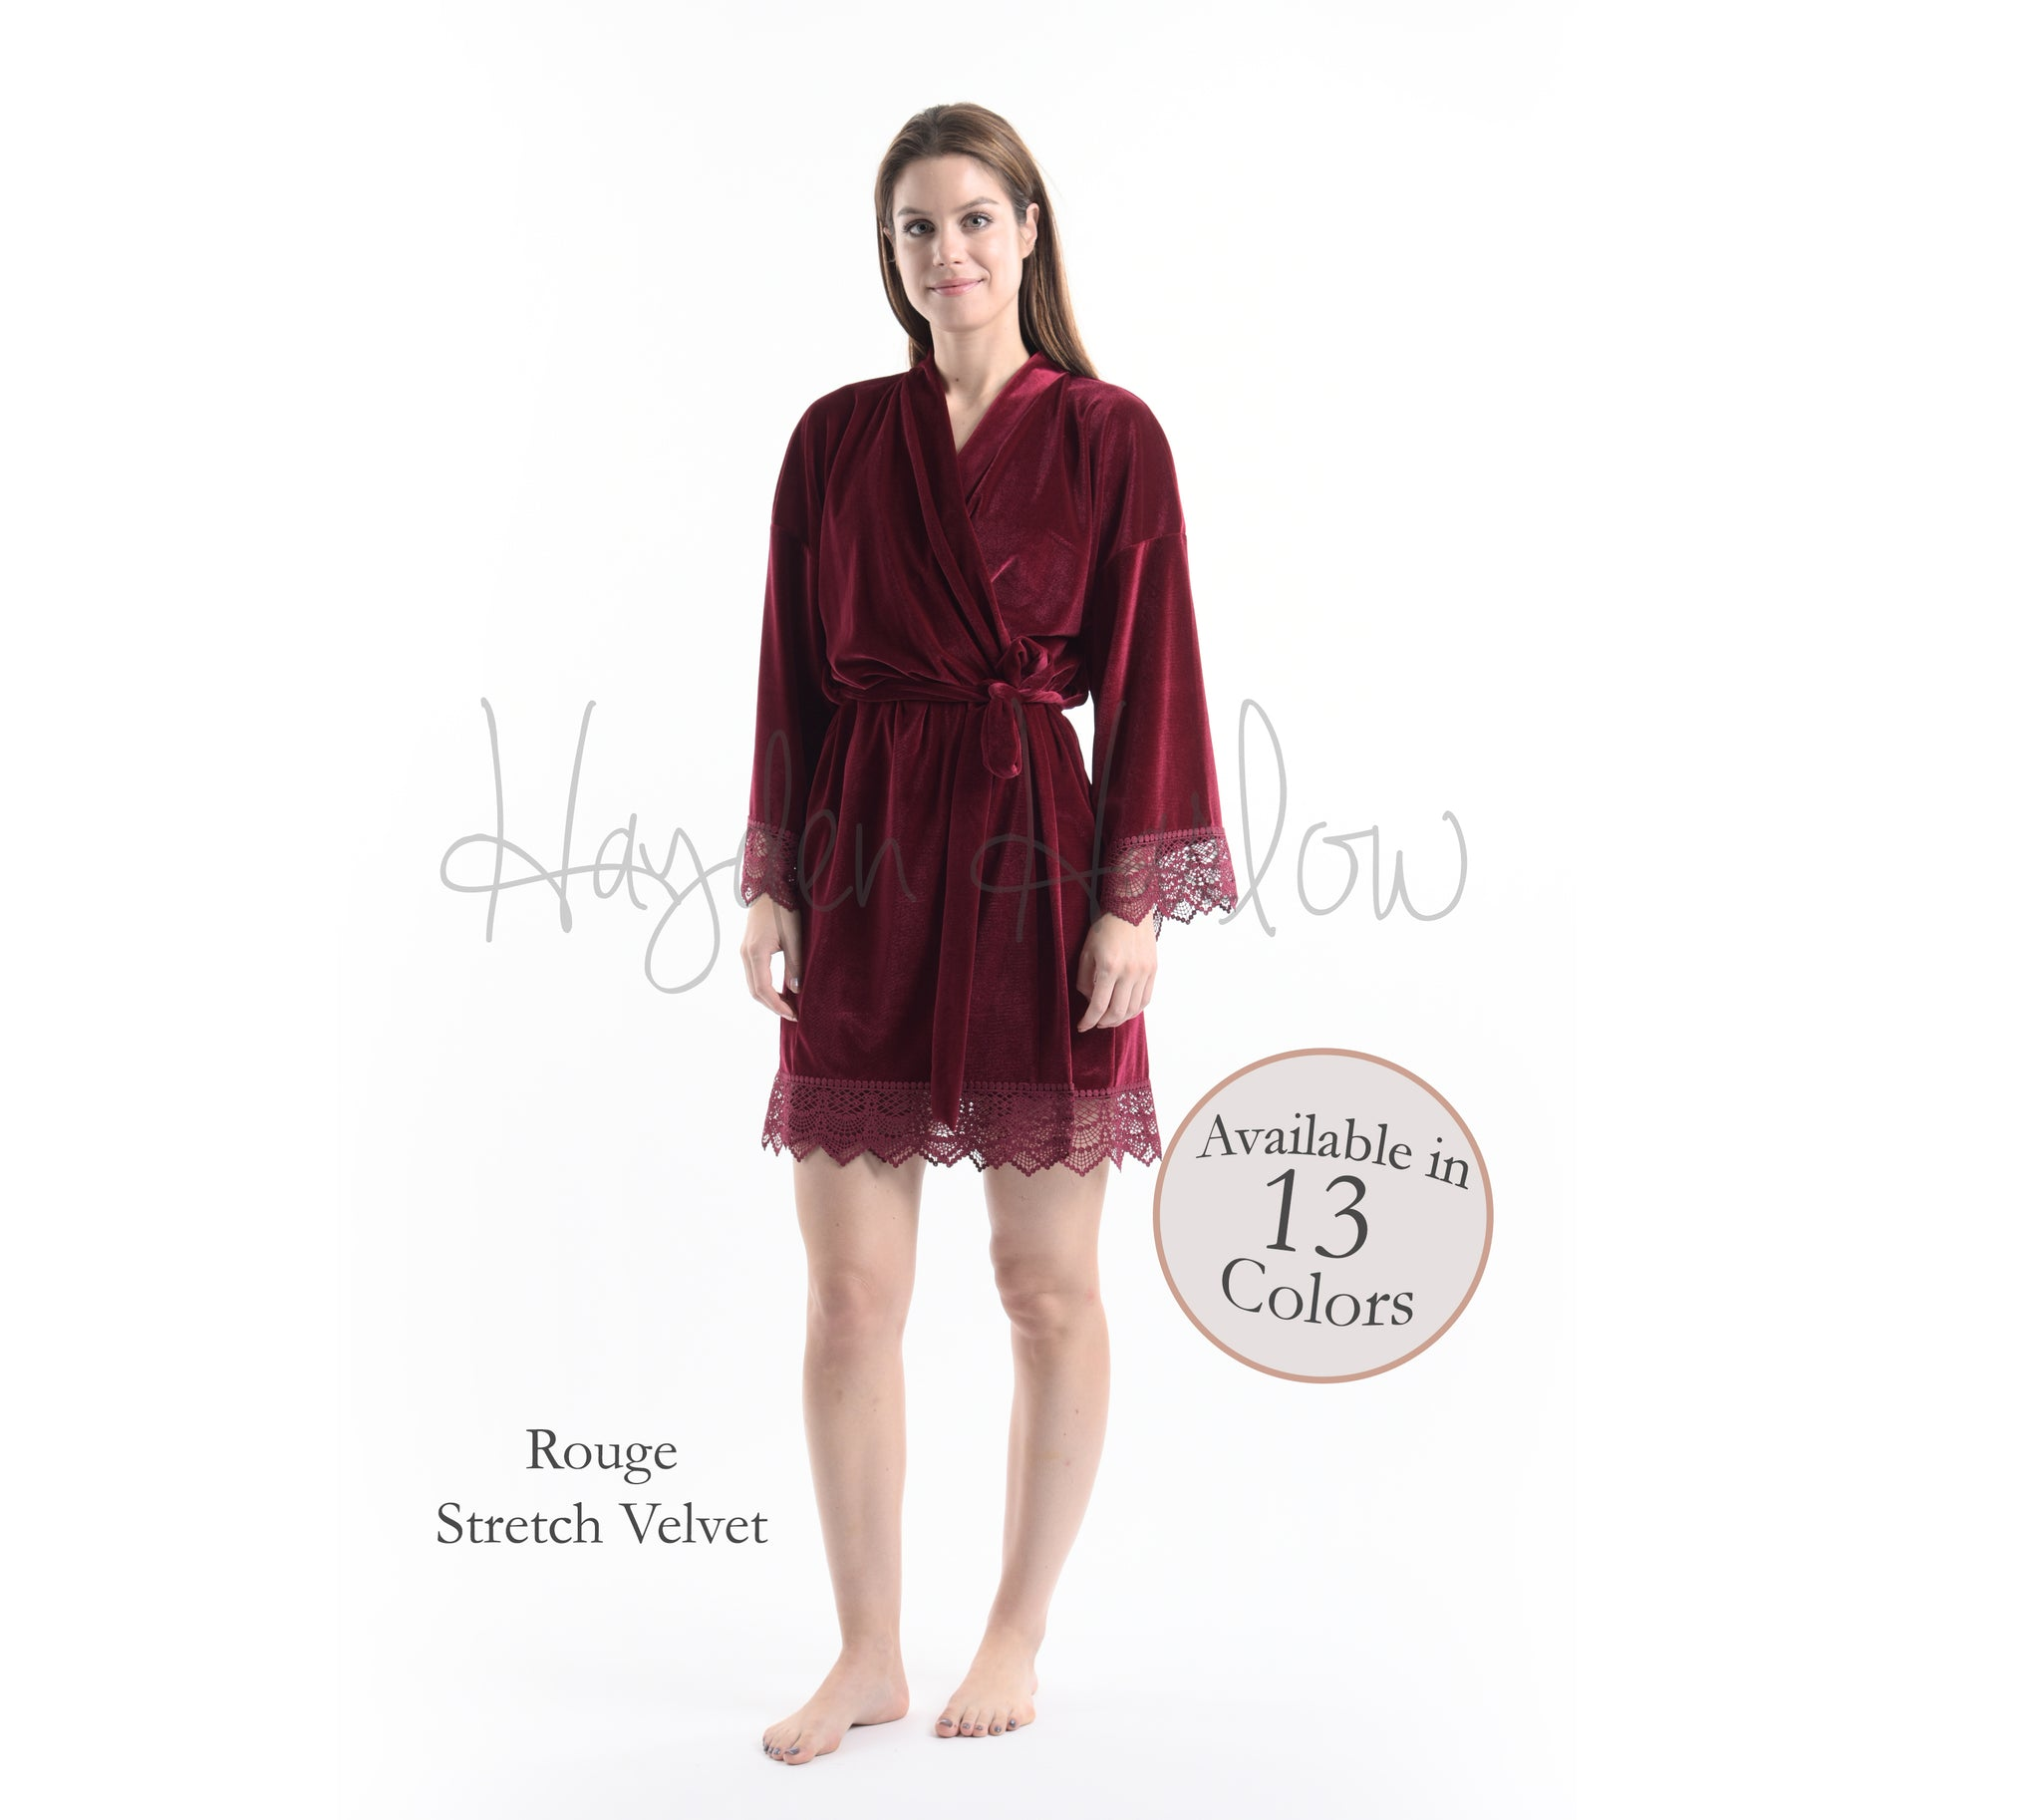 Rouge Red Stretch Velvet & Lace robe - Hayden Harlow